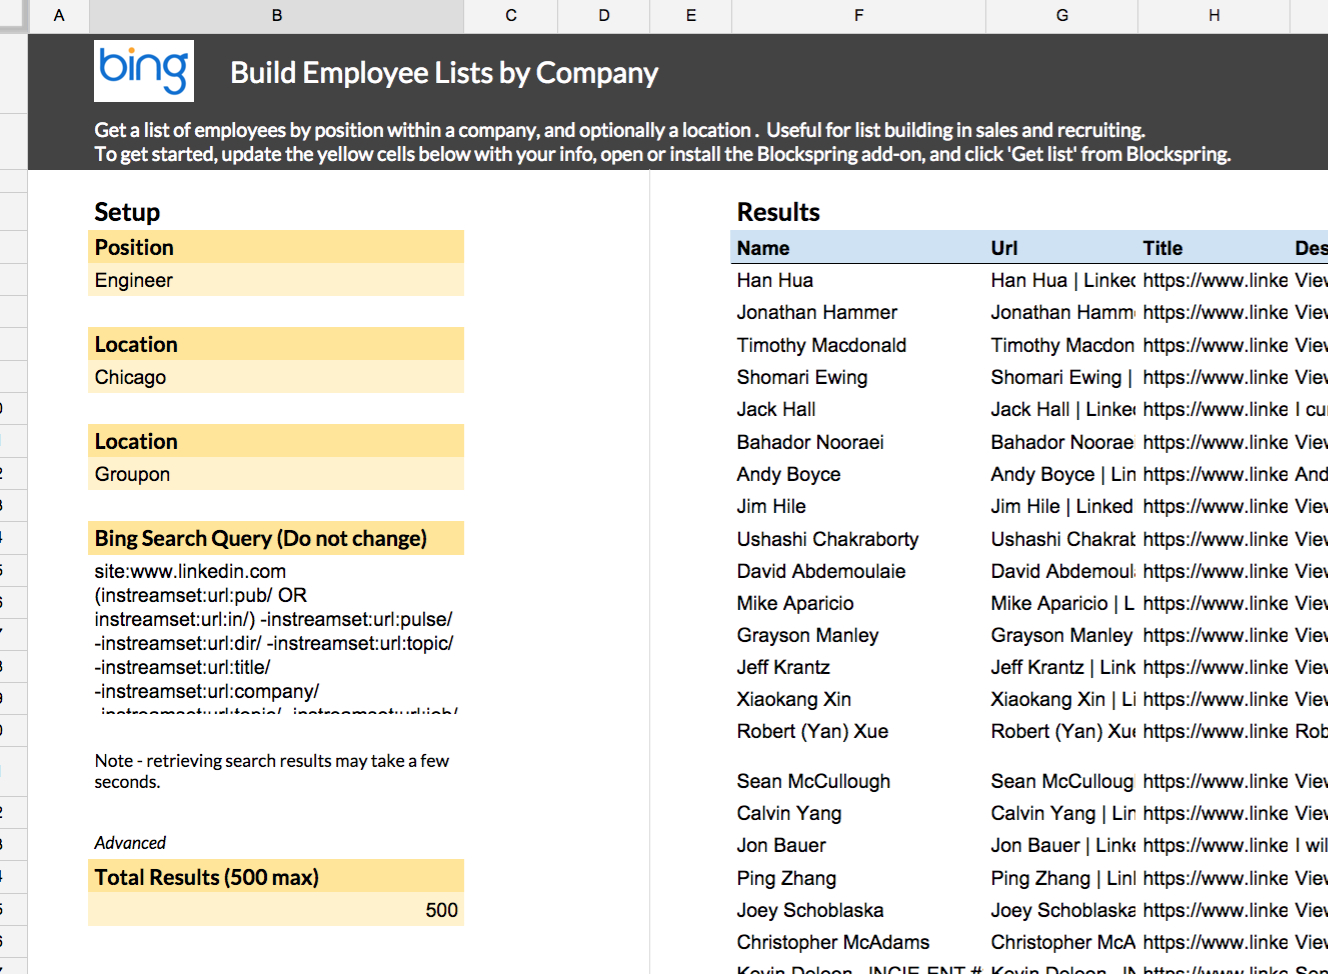 Job Search Spreadsheet Google Sheets Pertaining To Build Employee Listscompany  Spreadsheet Template In Google Job Search Spreadsheet Google Sheets Google Spreadshee Google Spreadshee job search spreadsheet google sheets